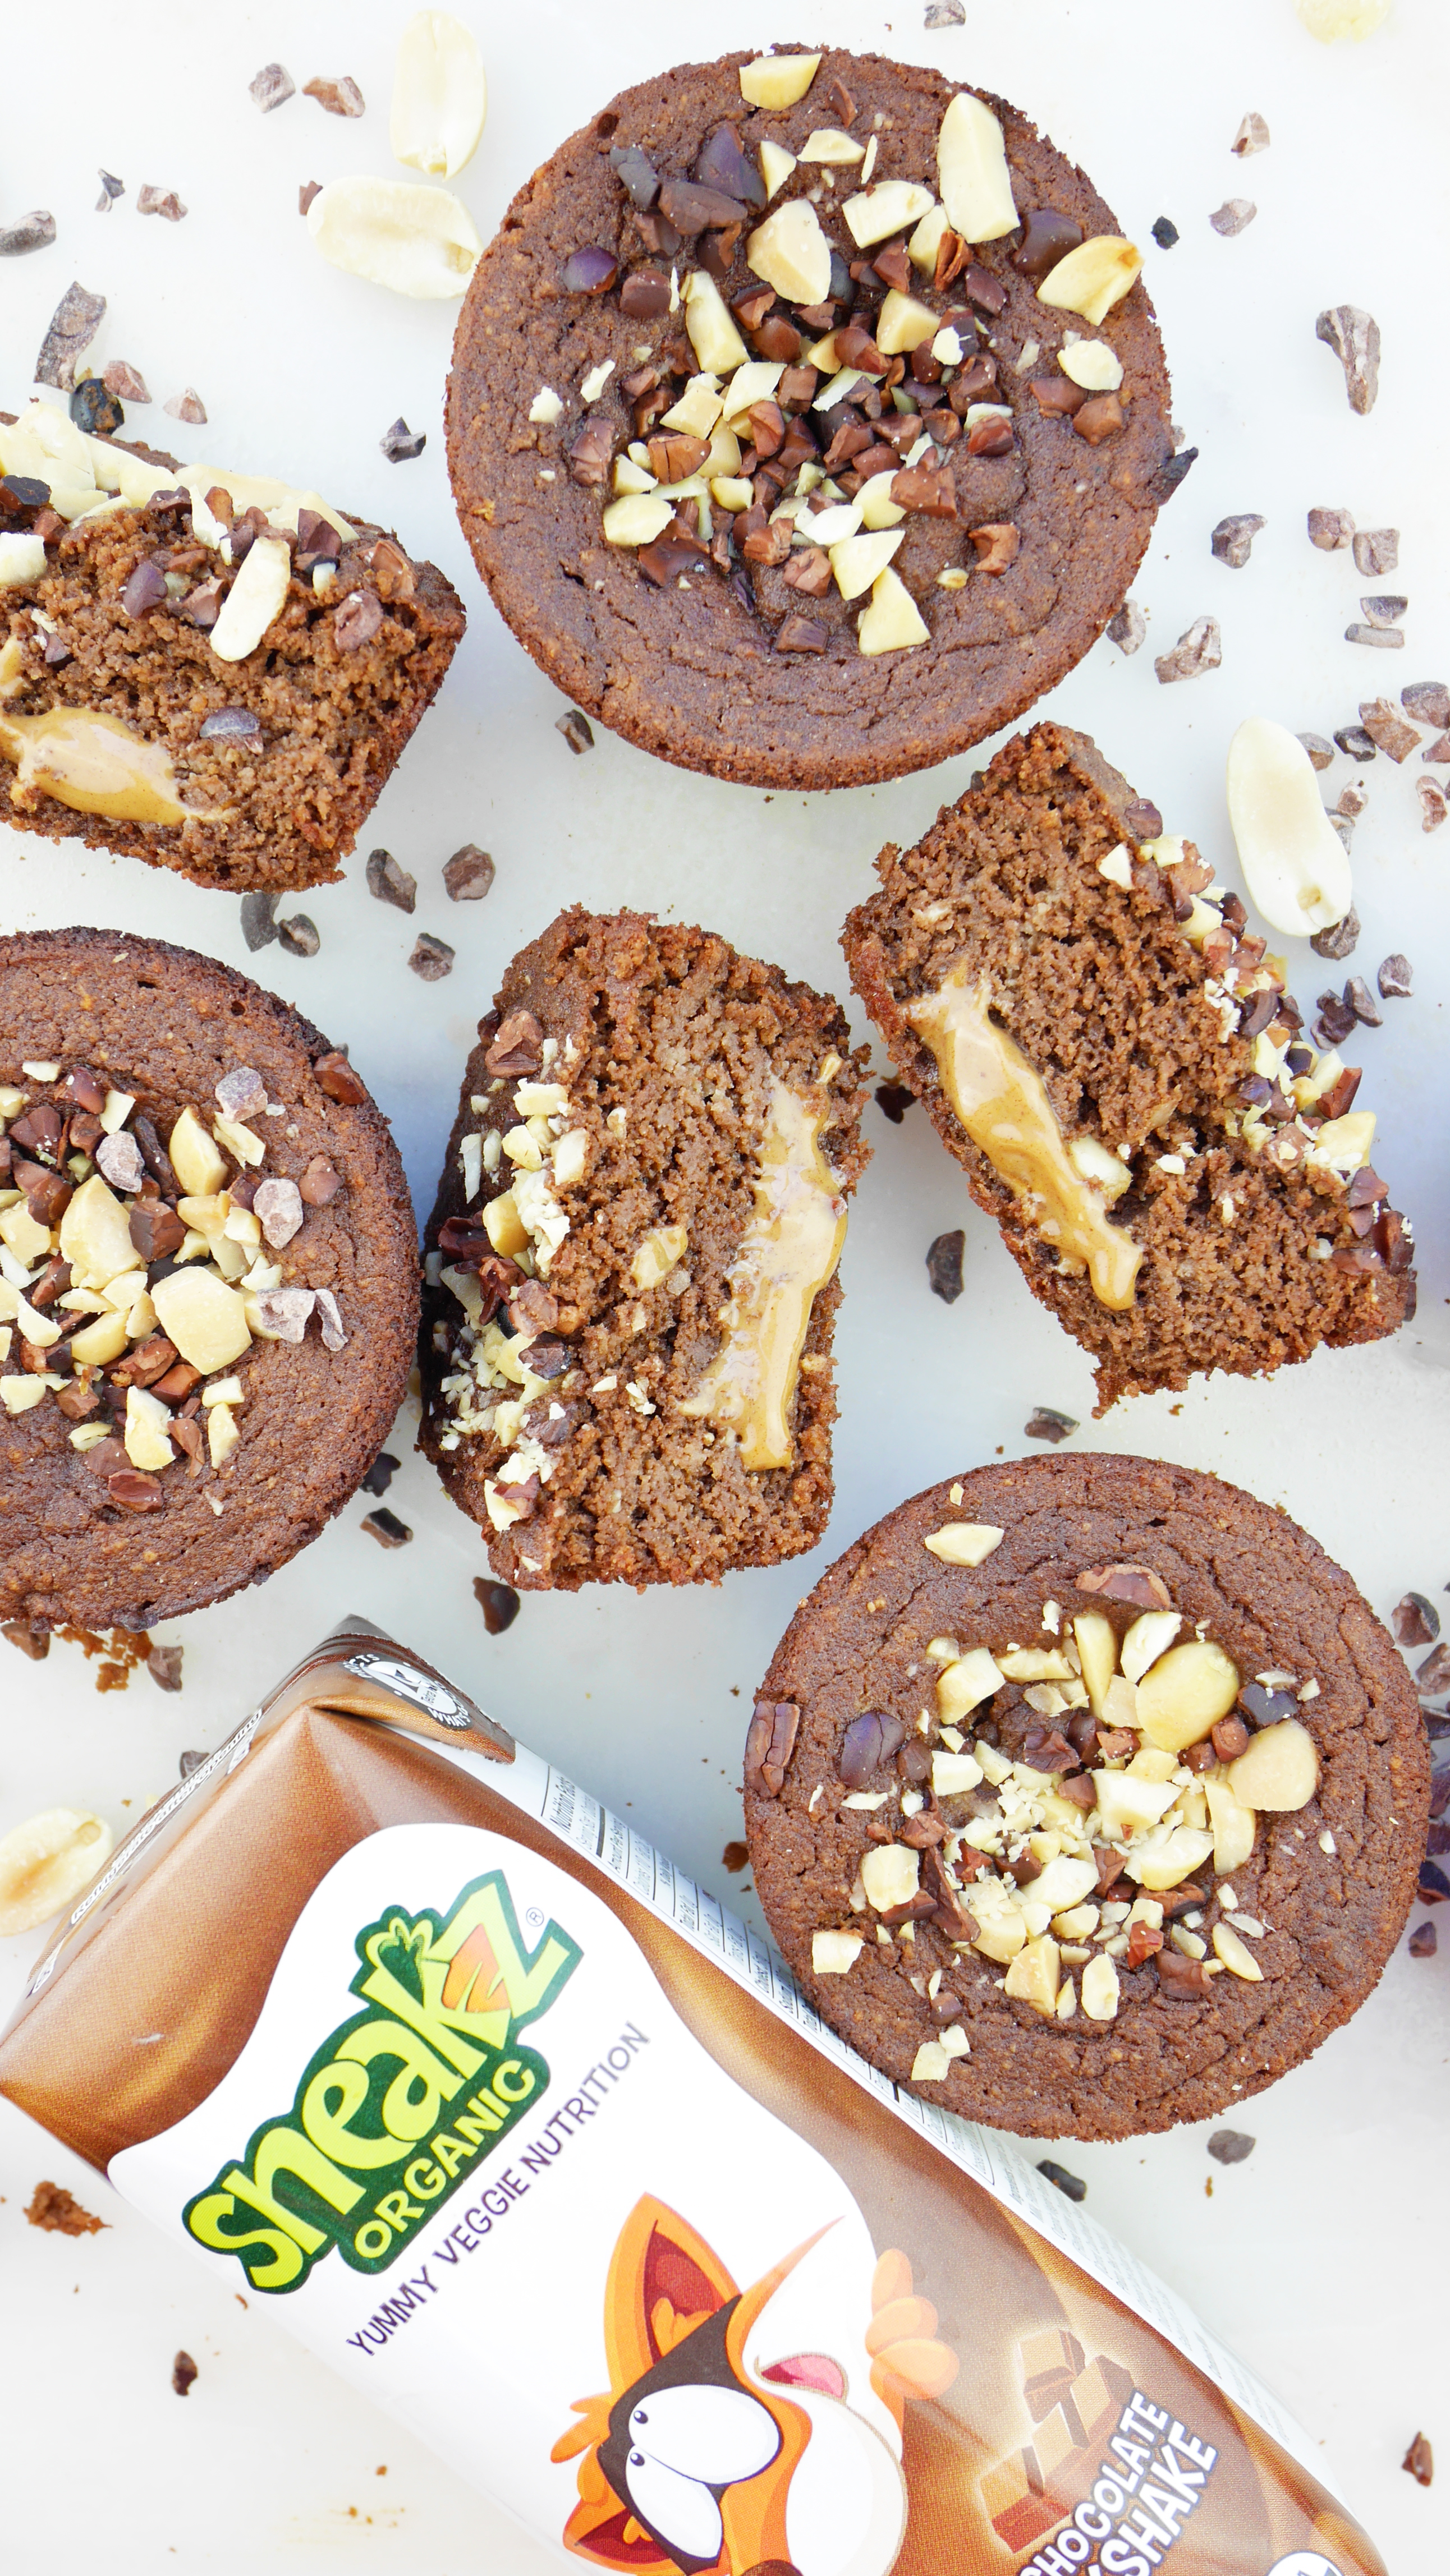 PB-stuffed chocolate muffins that sneaks in your veggies? Sign me up, yall! Peanut Butter-Stuffed Chocolate Veggie Muffins Sneakz Organic Milkshakes